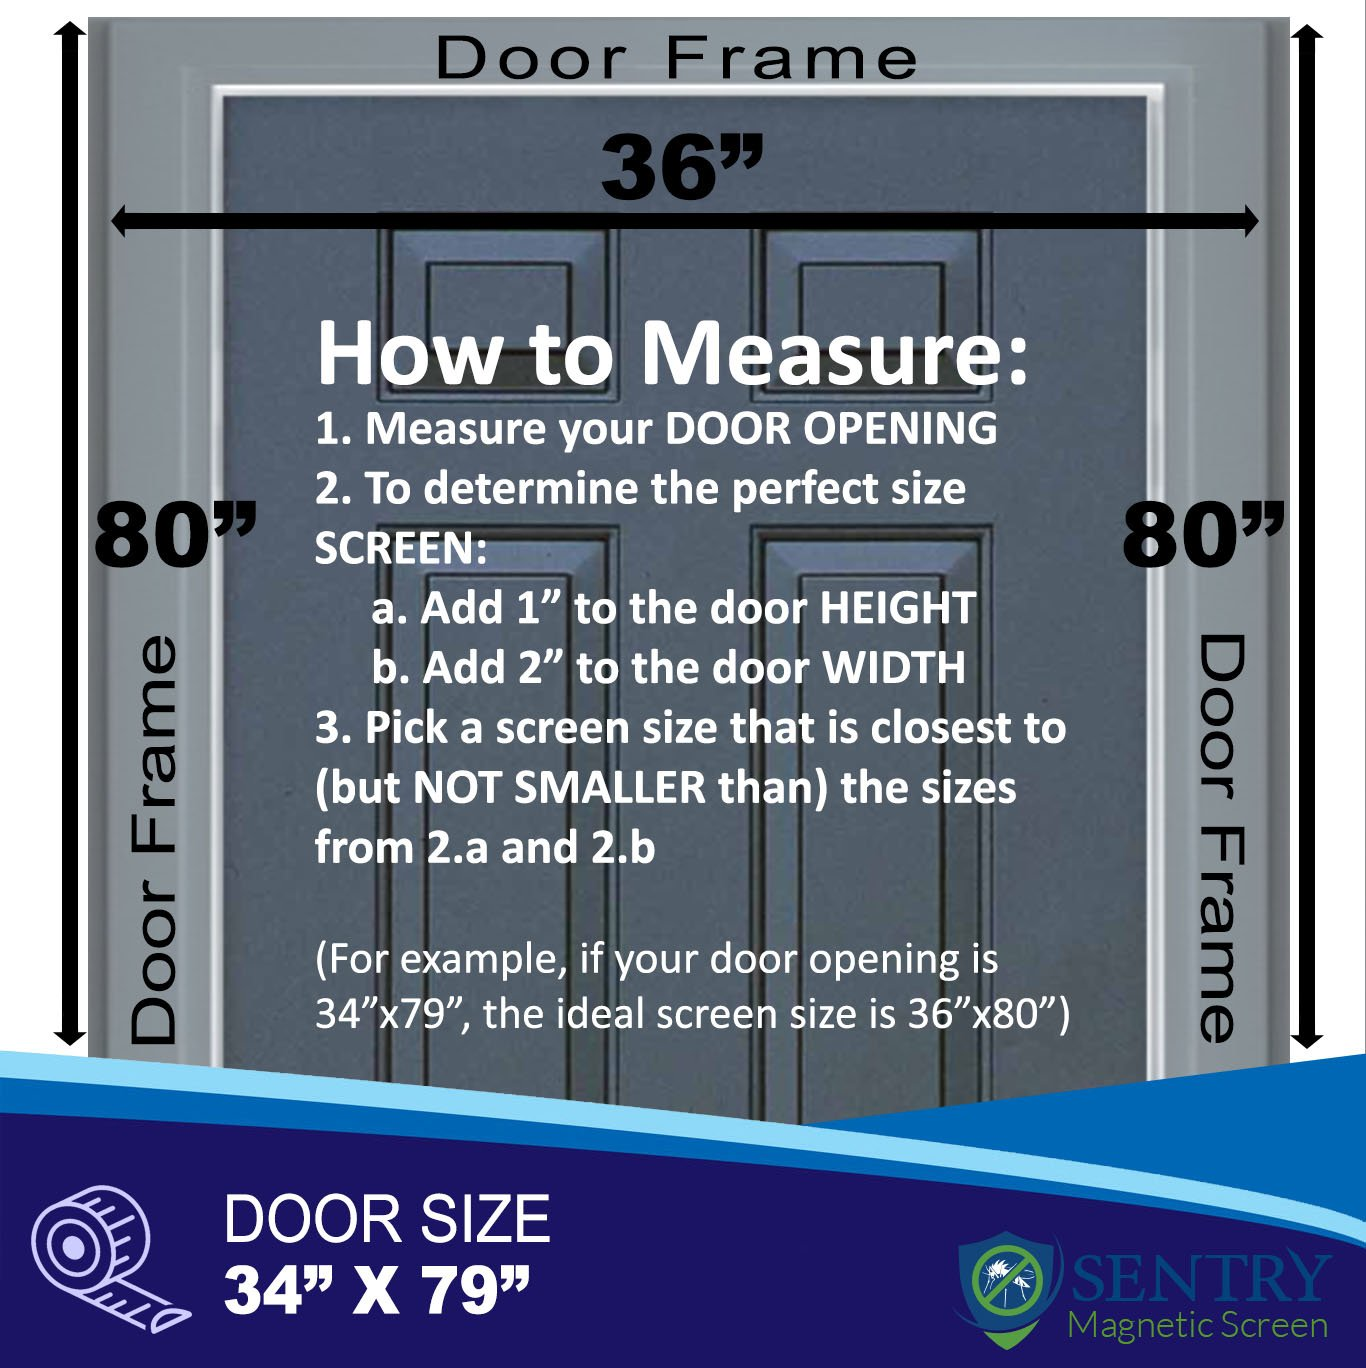 Reinforced Magnetic Screen Door US Military Approved Many Sizes and Colors to Fit Your Door Exactly with Full Frame Hook and Loop Fasteners to Ensure All Bugs are Kept Out Tough and Durable